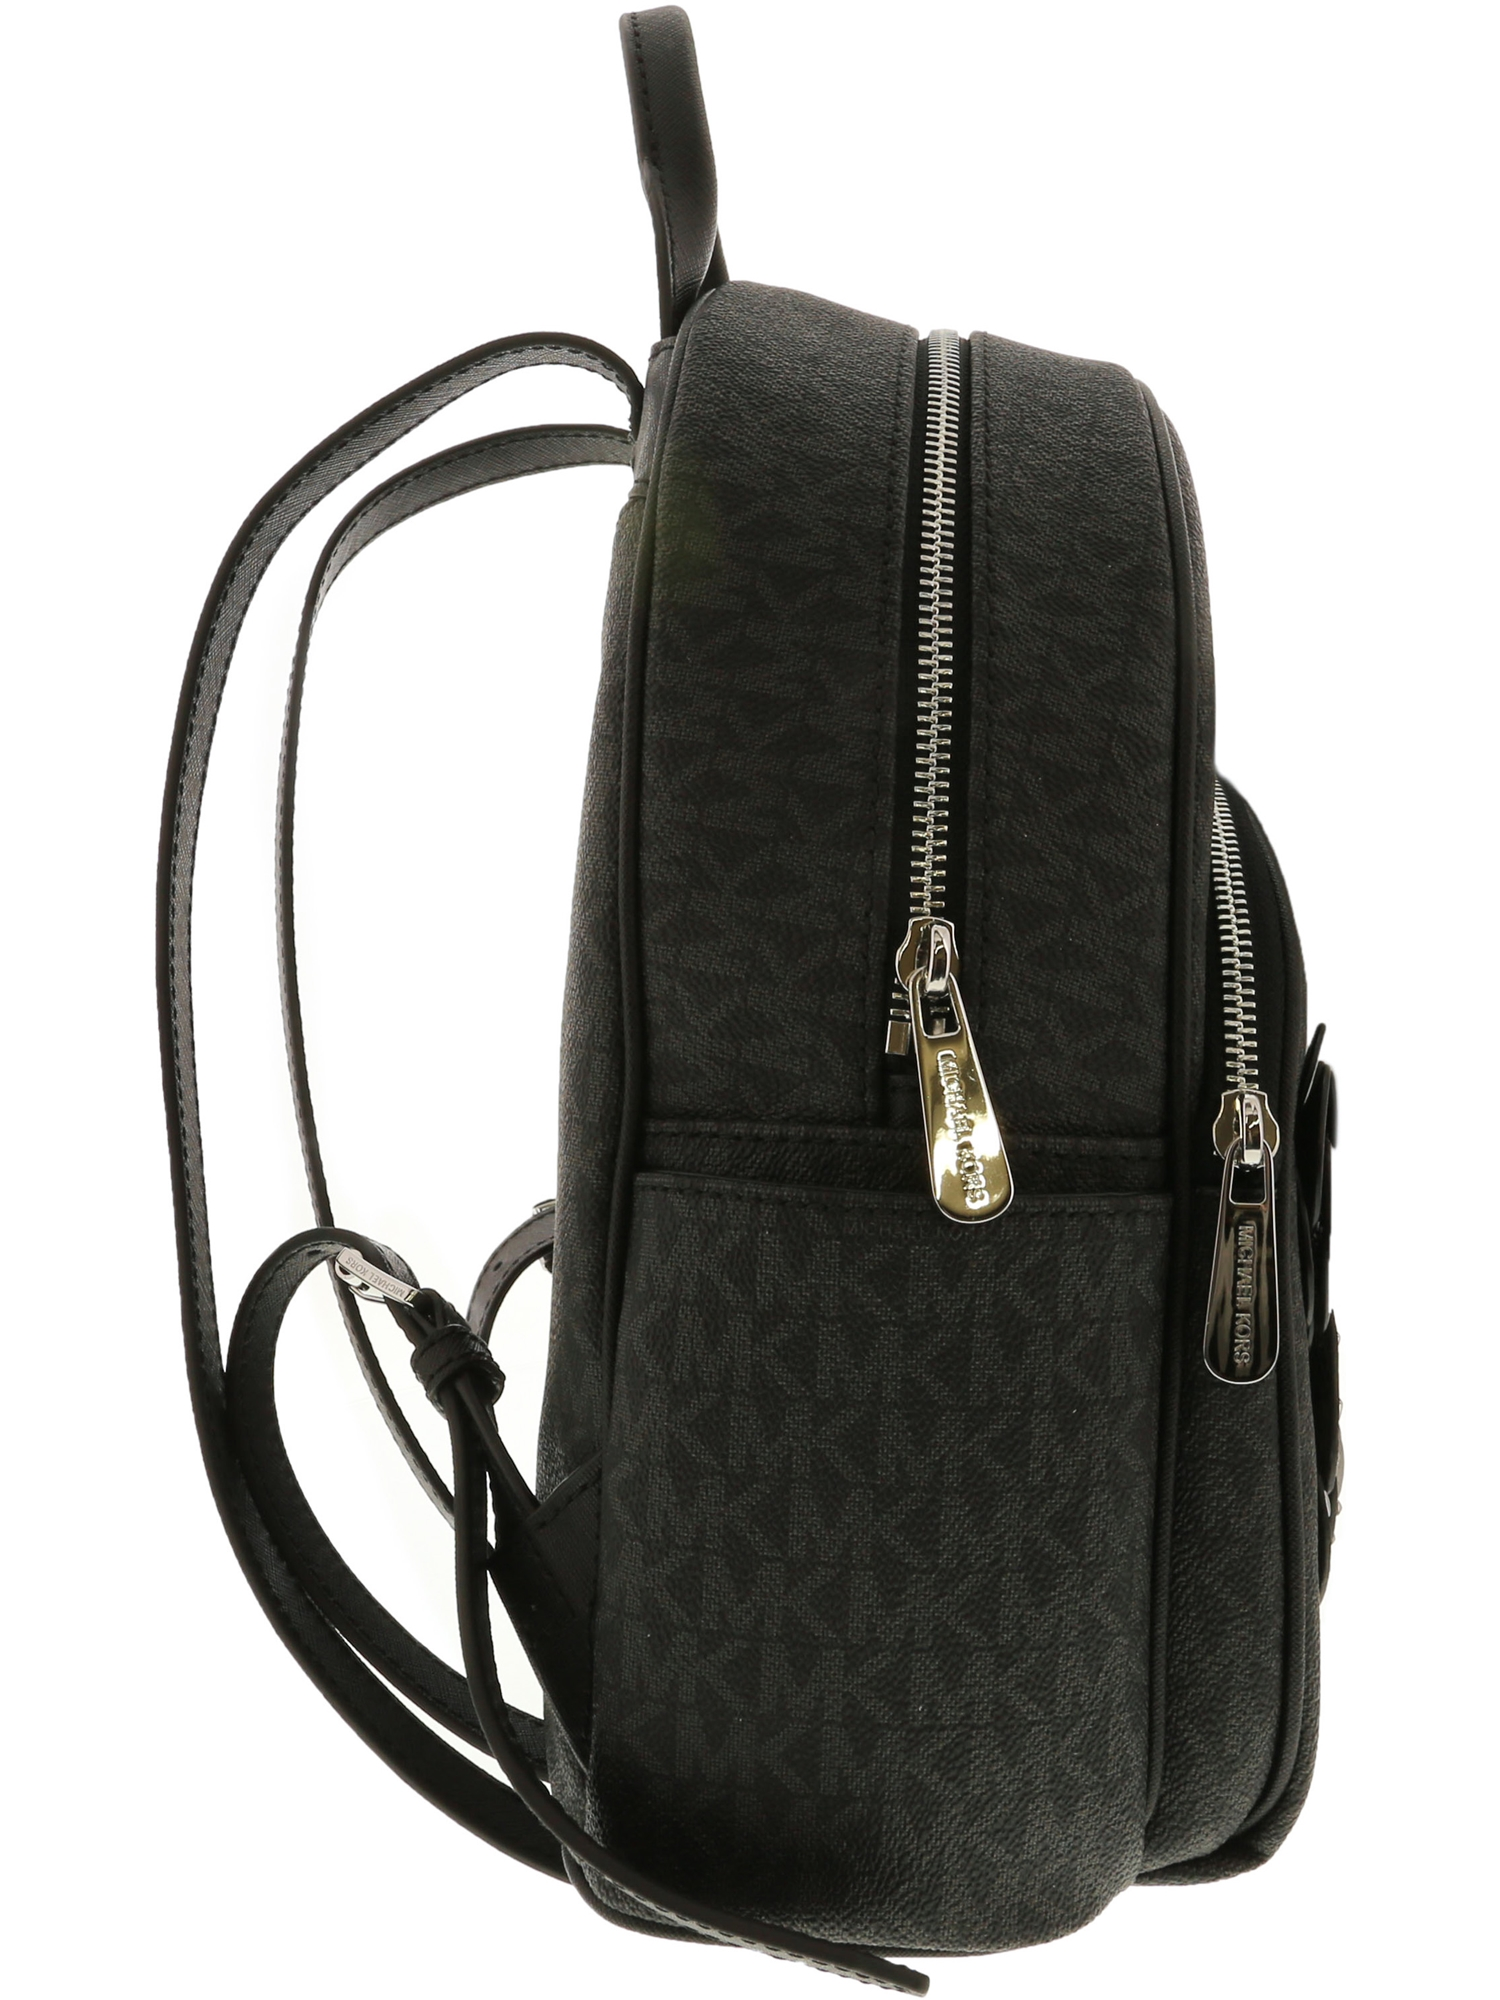 bd2f58e3137a5e Michael Kors - Michael Kors Women's Abbey Medium Leather Backpack - Black -  Walmart.com